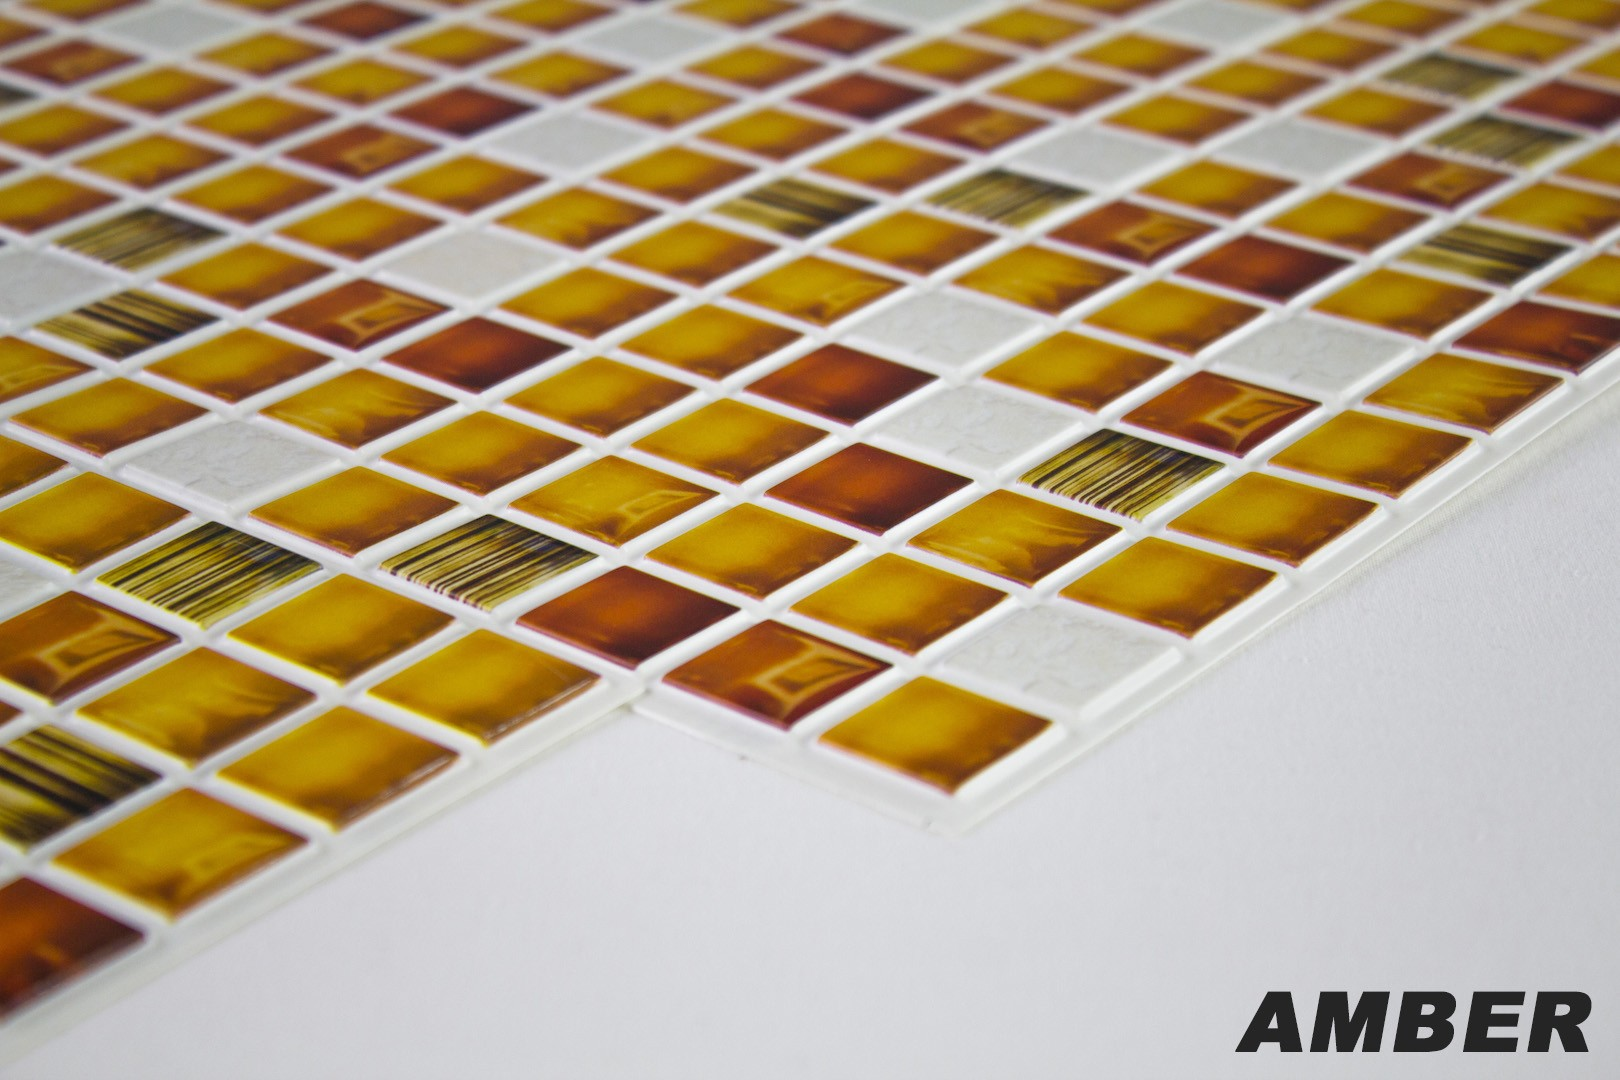 Simple Pvc Dekorplatte Mosaic Platten Wand Innen Xcm Amber With Wand Innen.